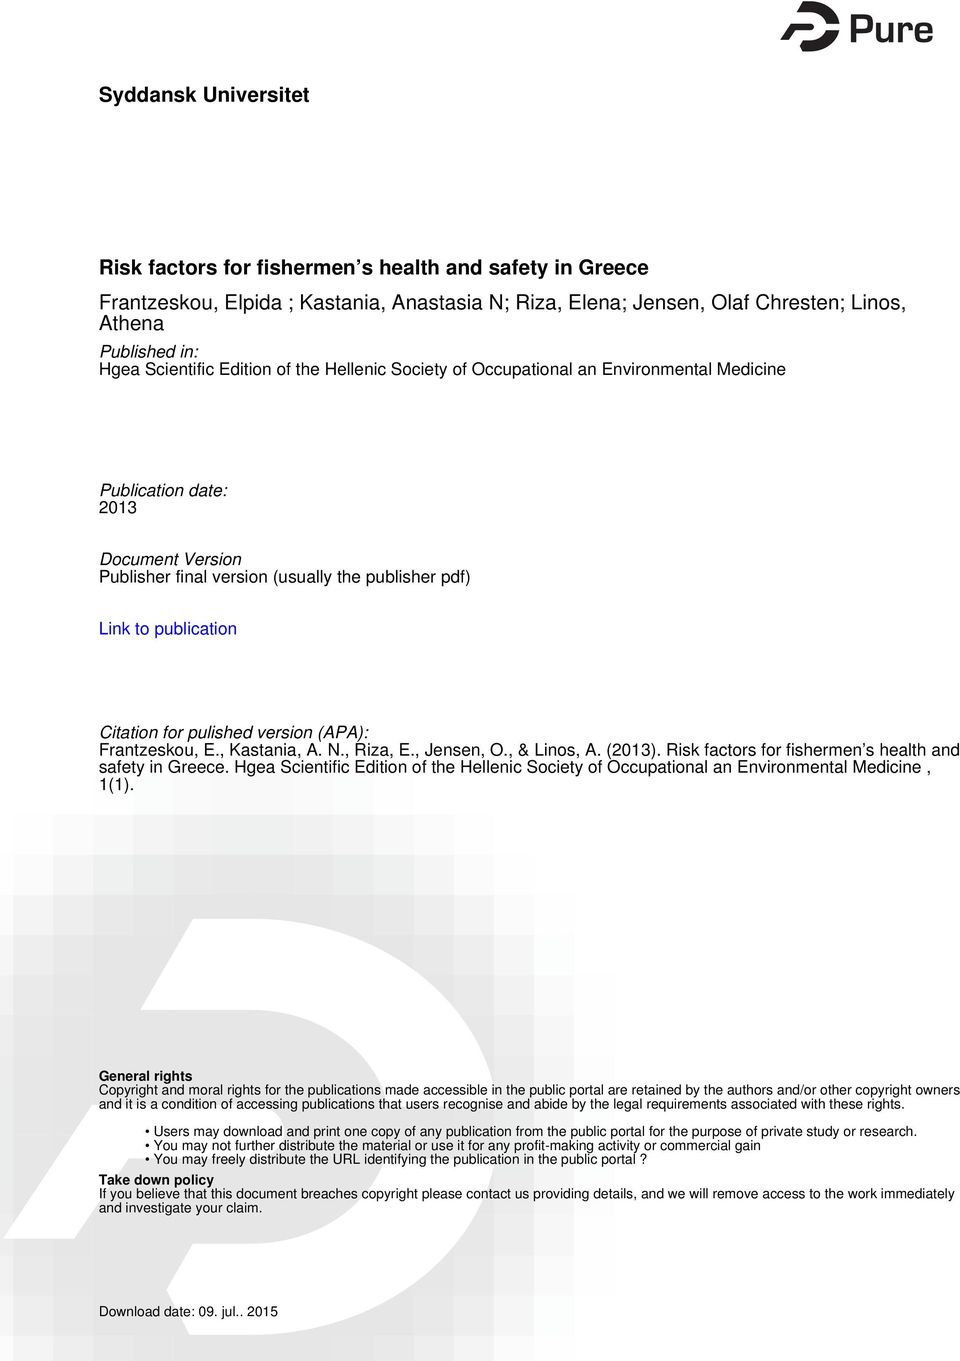 Citation for pulished version (APA): Frantzeskou, E., Kastania, A. N., Riza, E., Jensen, O., & Linos, A. (2013). Risk factors for fishermen s health and safety in Greece.